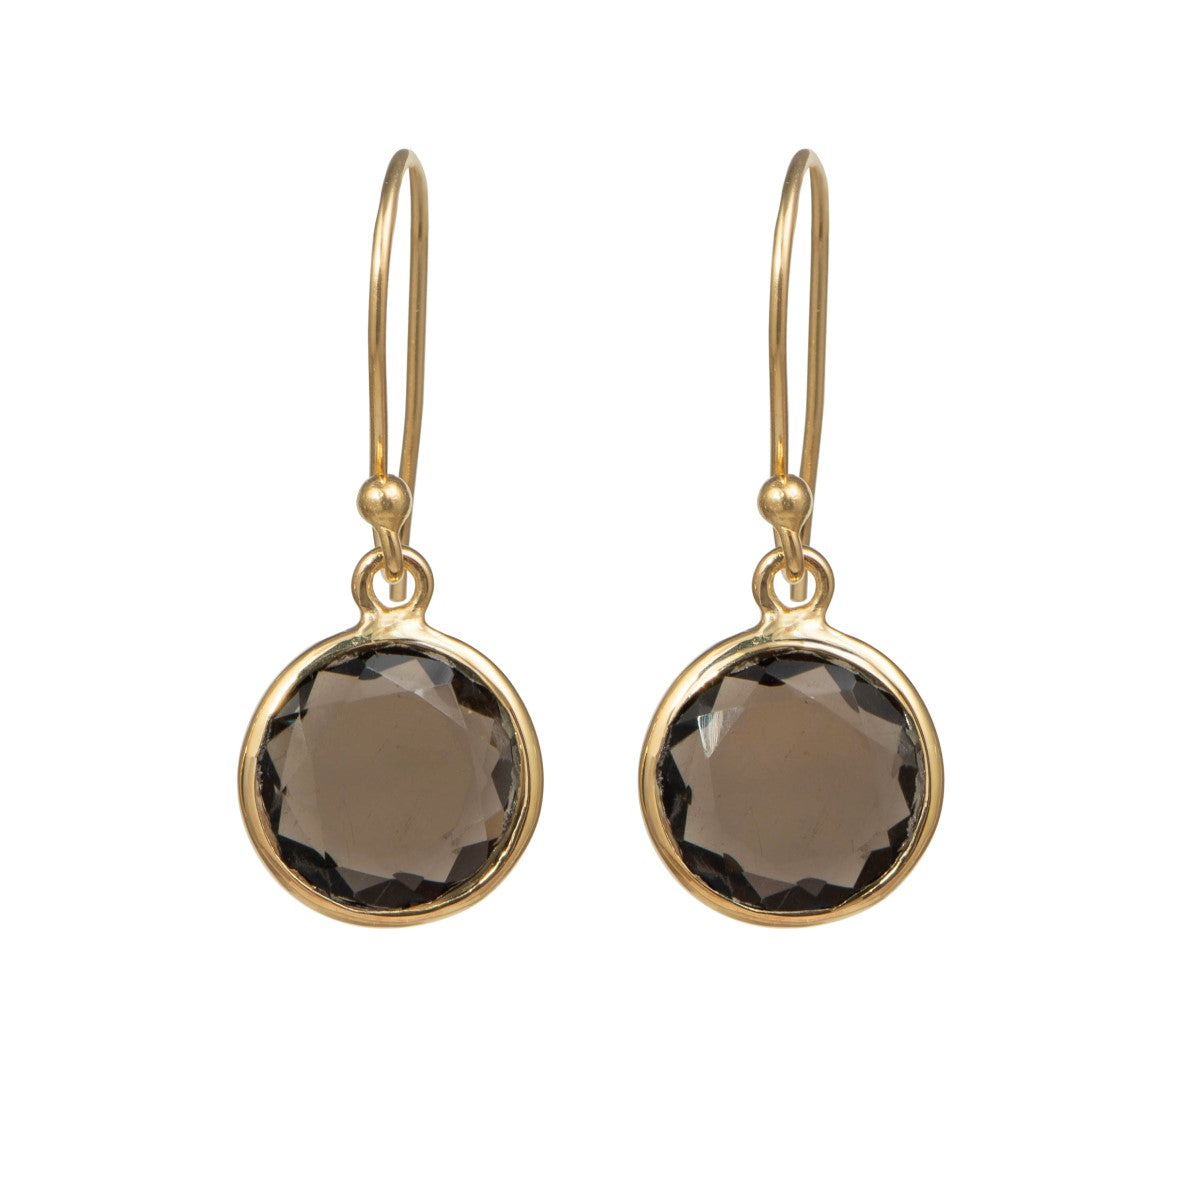 Smoky Quartz Gold Plated Sterling Silver Earrings with a Round Faceted Gemstone Drop